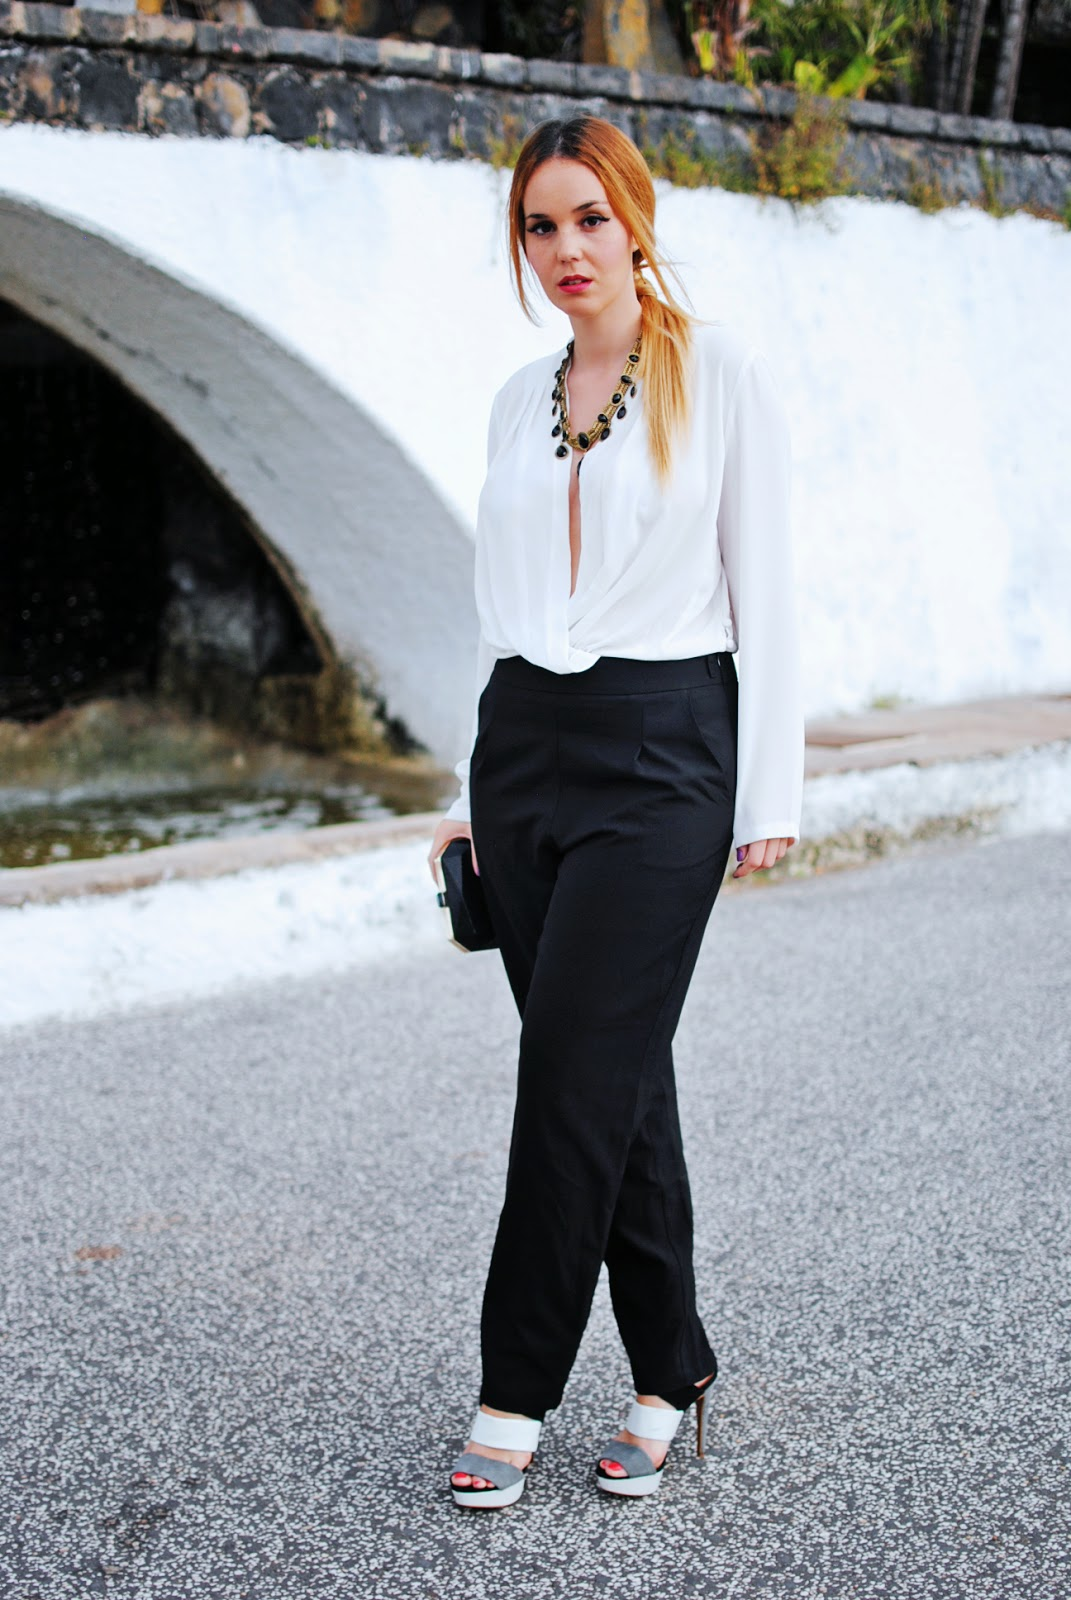 nery hdez, q2, jumpsuit, mono largo, black and white, zara shoes,